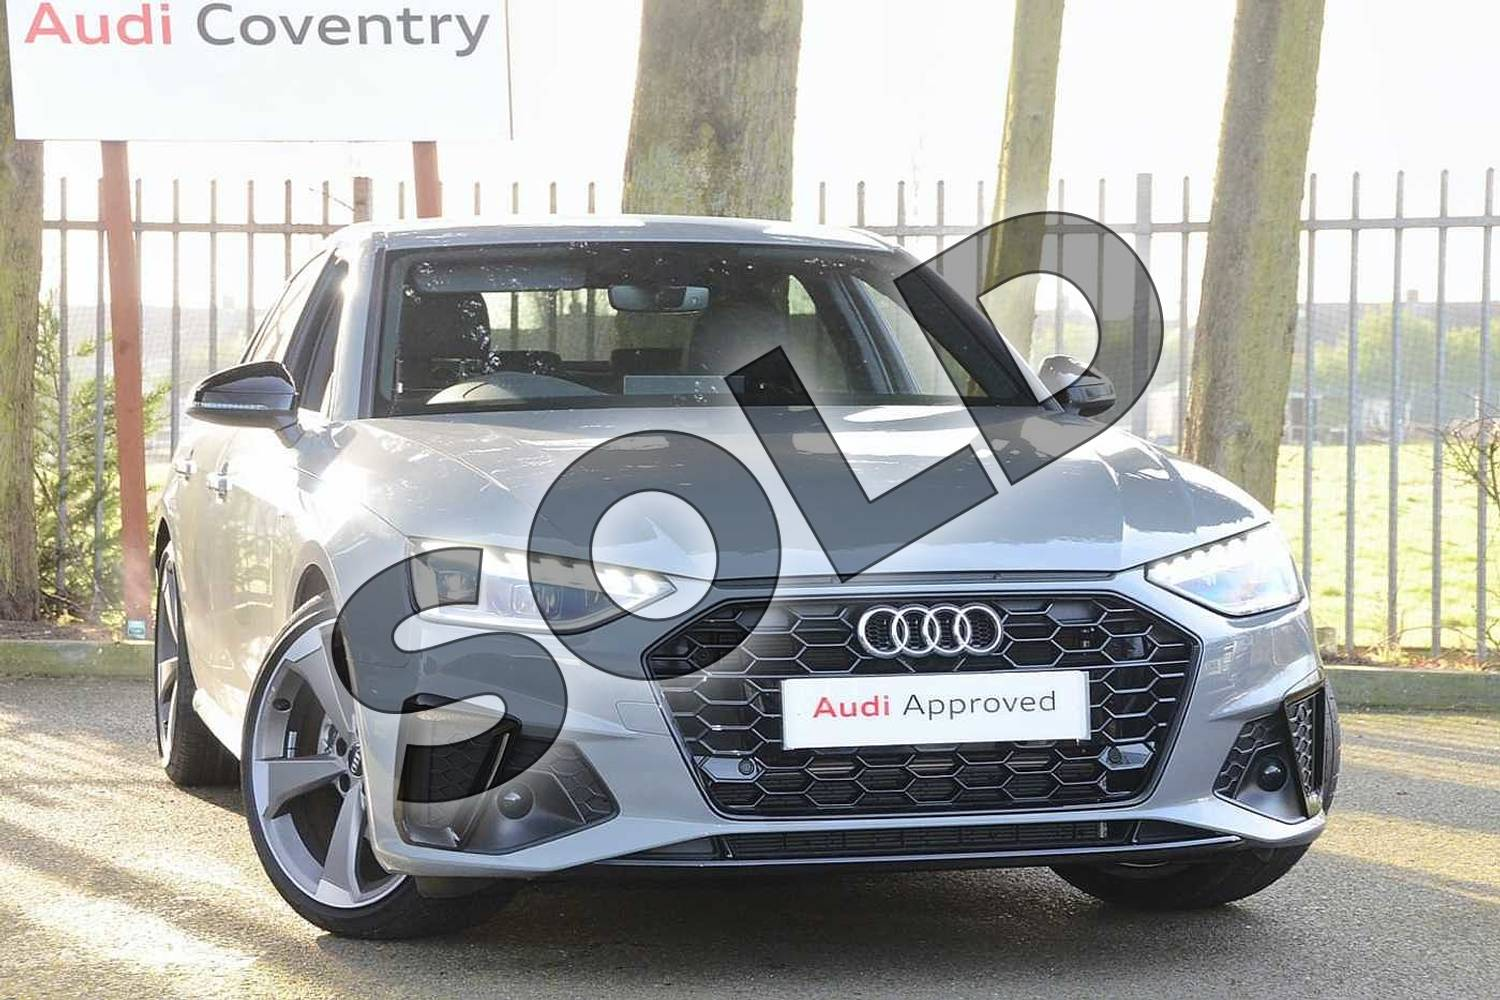 2020 Audi A4 Diesel Saloon 30 TDI Black Edition 4dr S Tronic in Quantum Grey at Coventry Audi